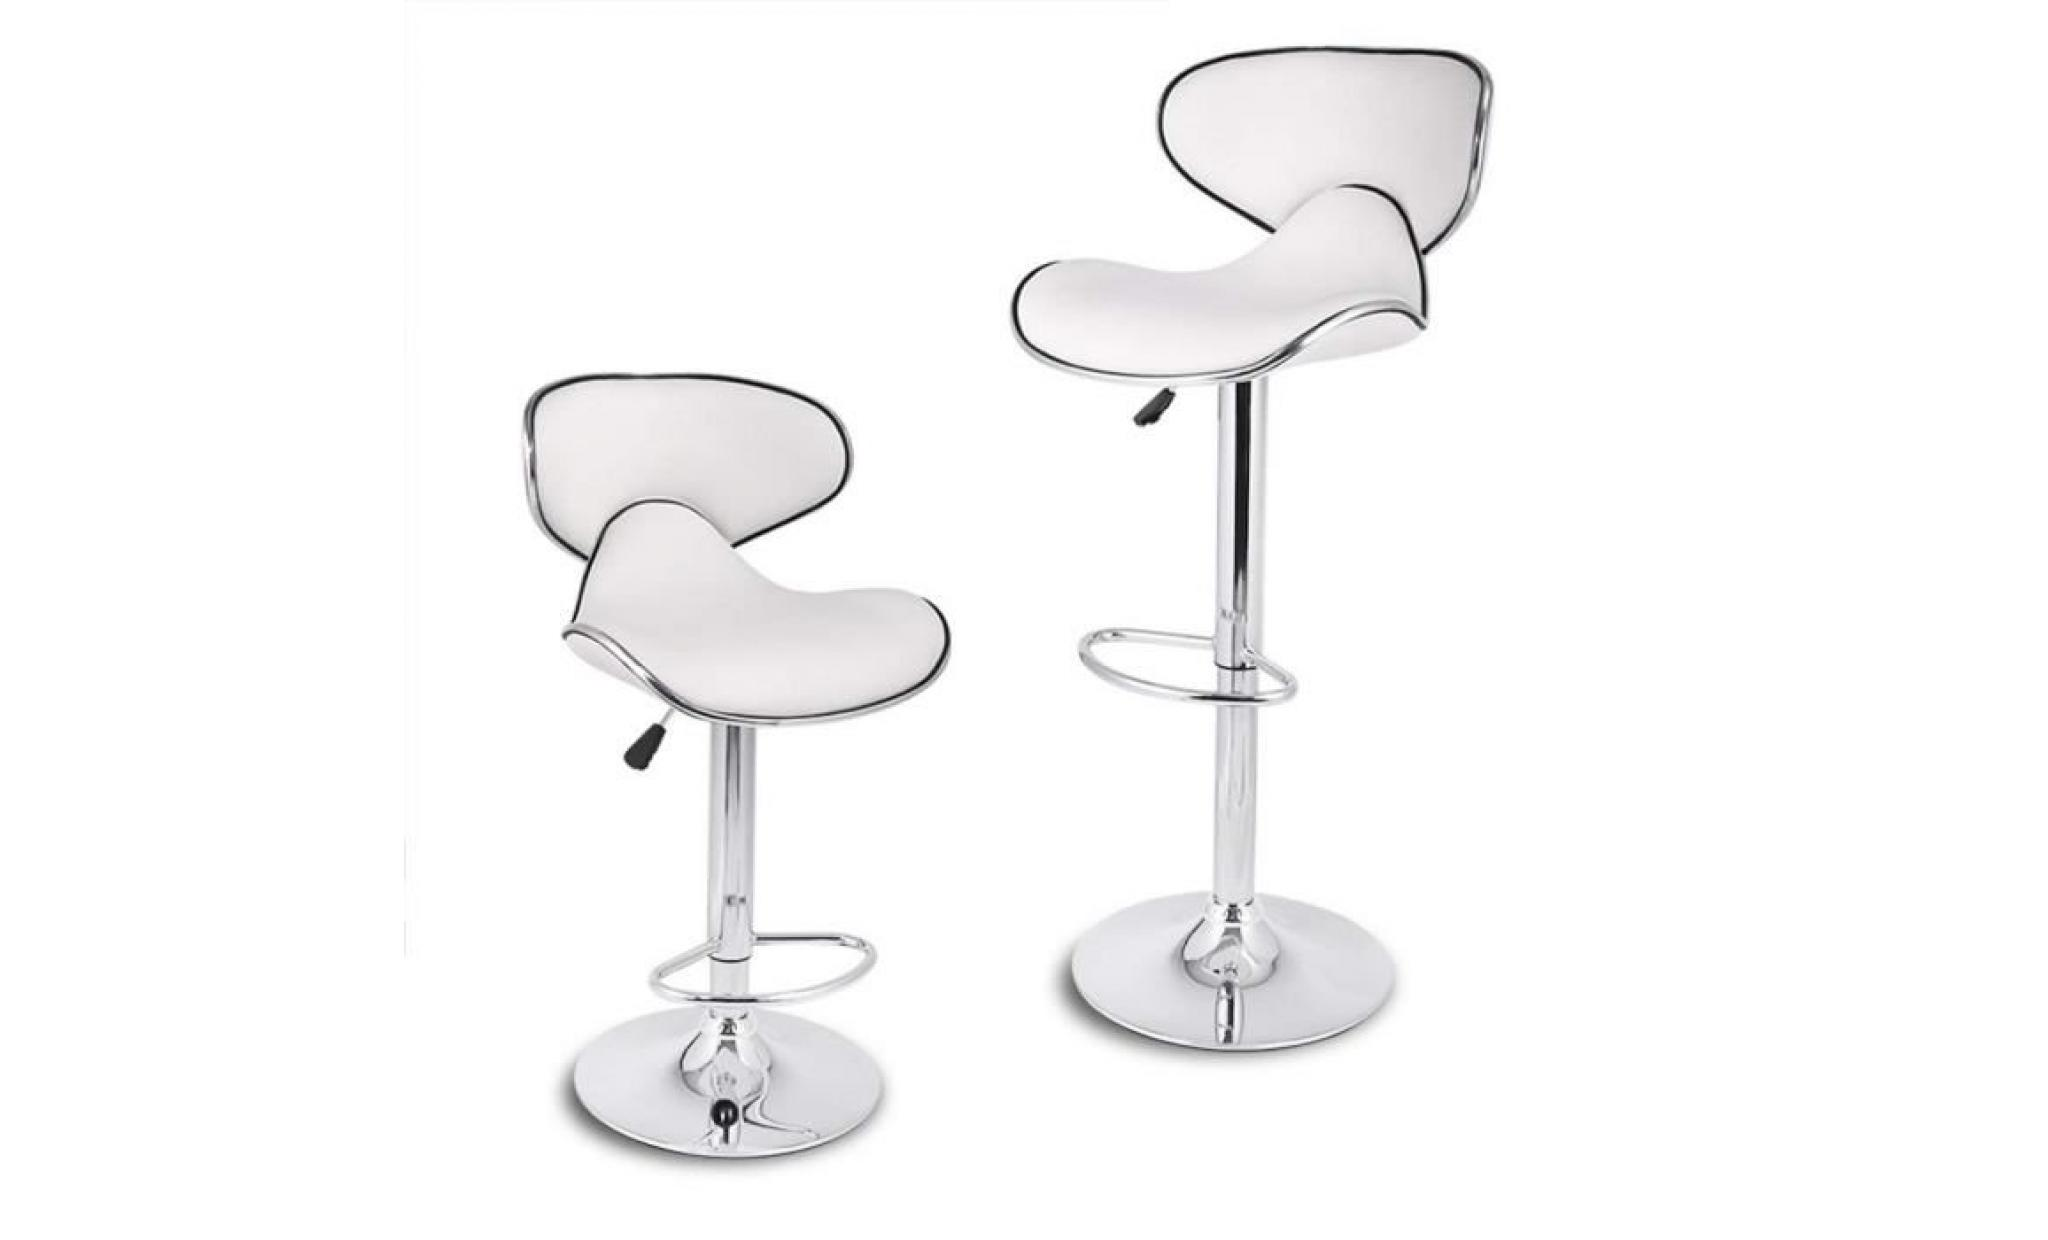 Tabourets De Bar Simili Cuir Noir Kangfun Tabourets De Bar Lot De 2 Chaise De Bar Similicuir Noir 46 49 85 105 Cm